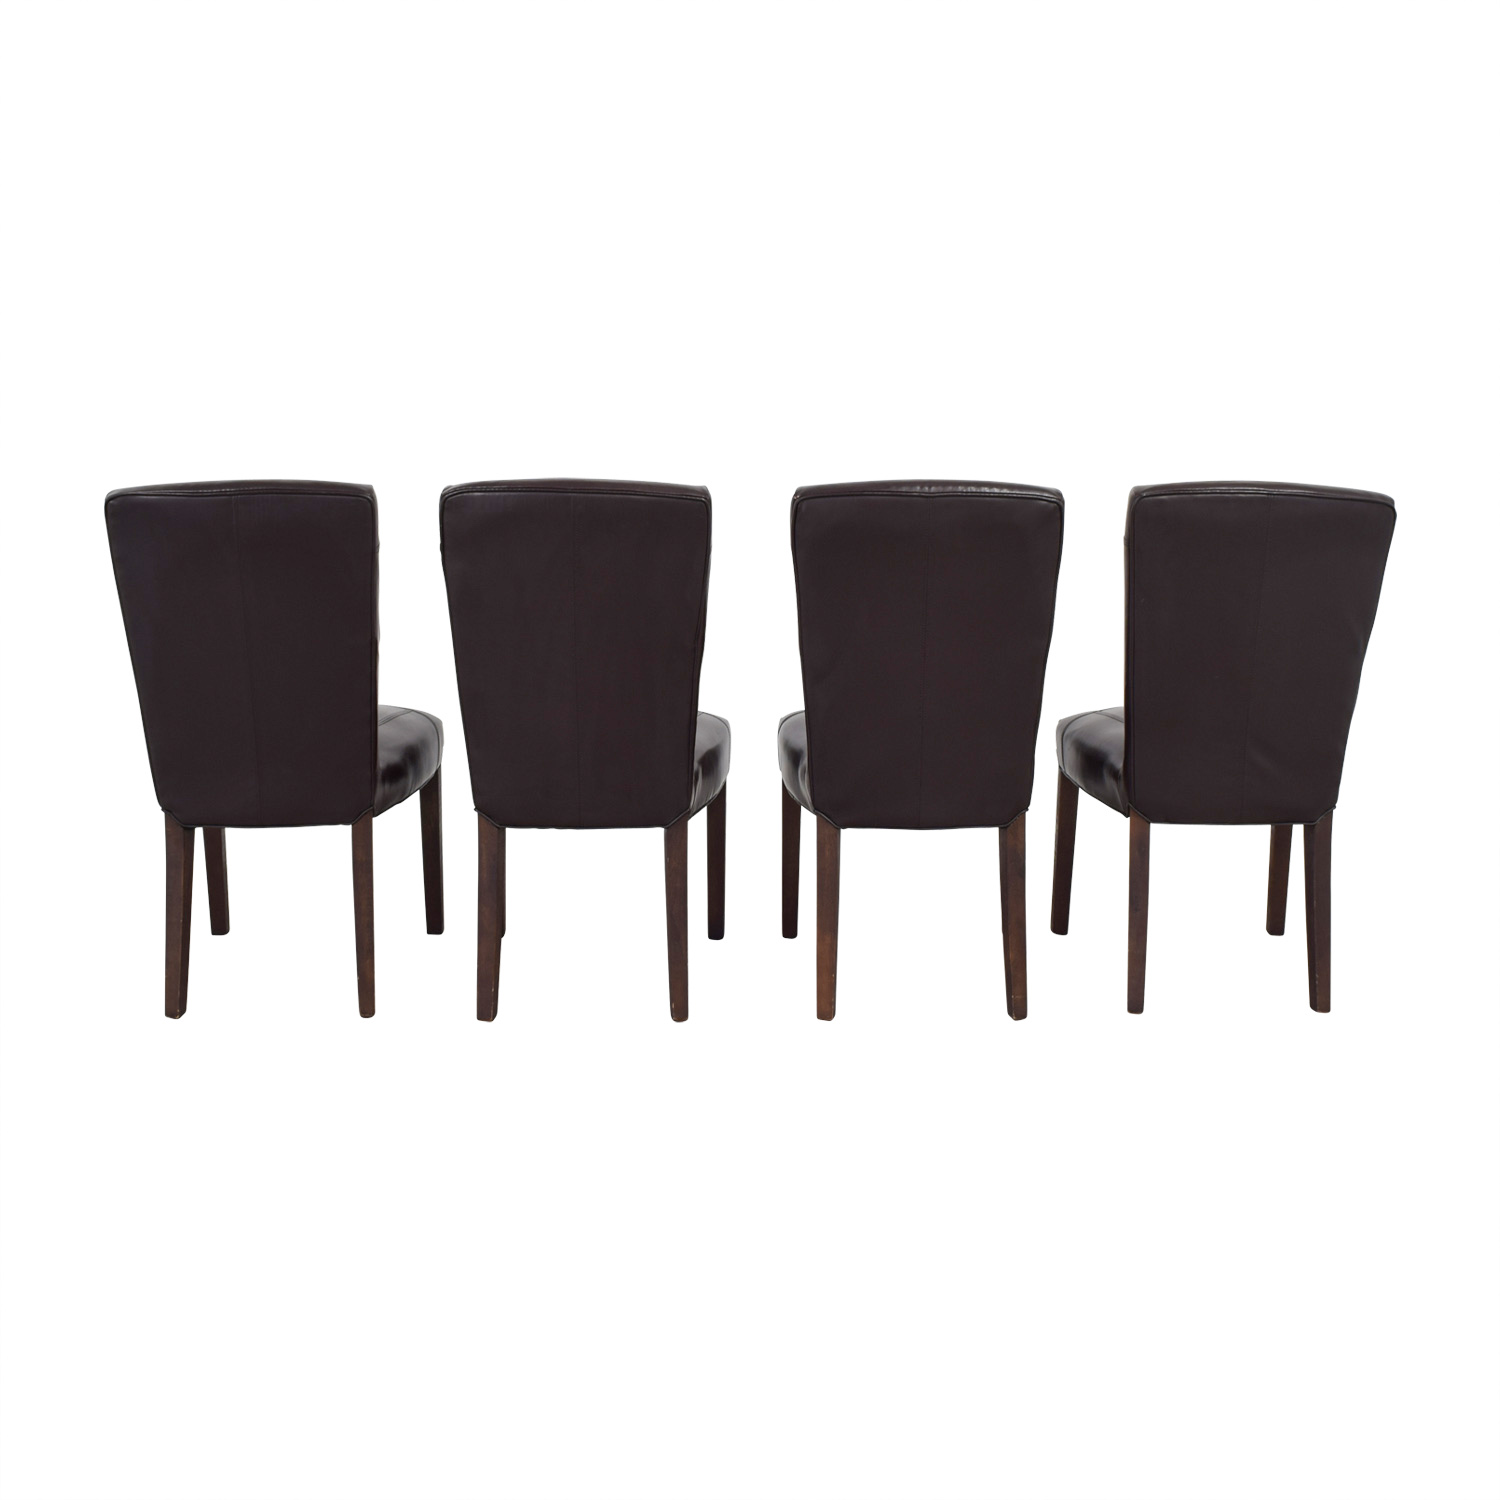 Arhaus Arhaus Capri Brown Chairs price